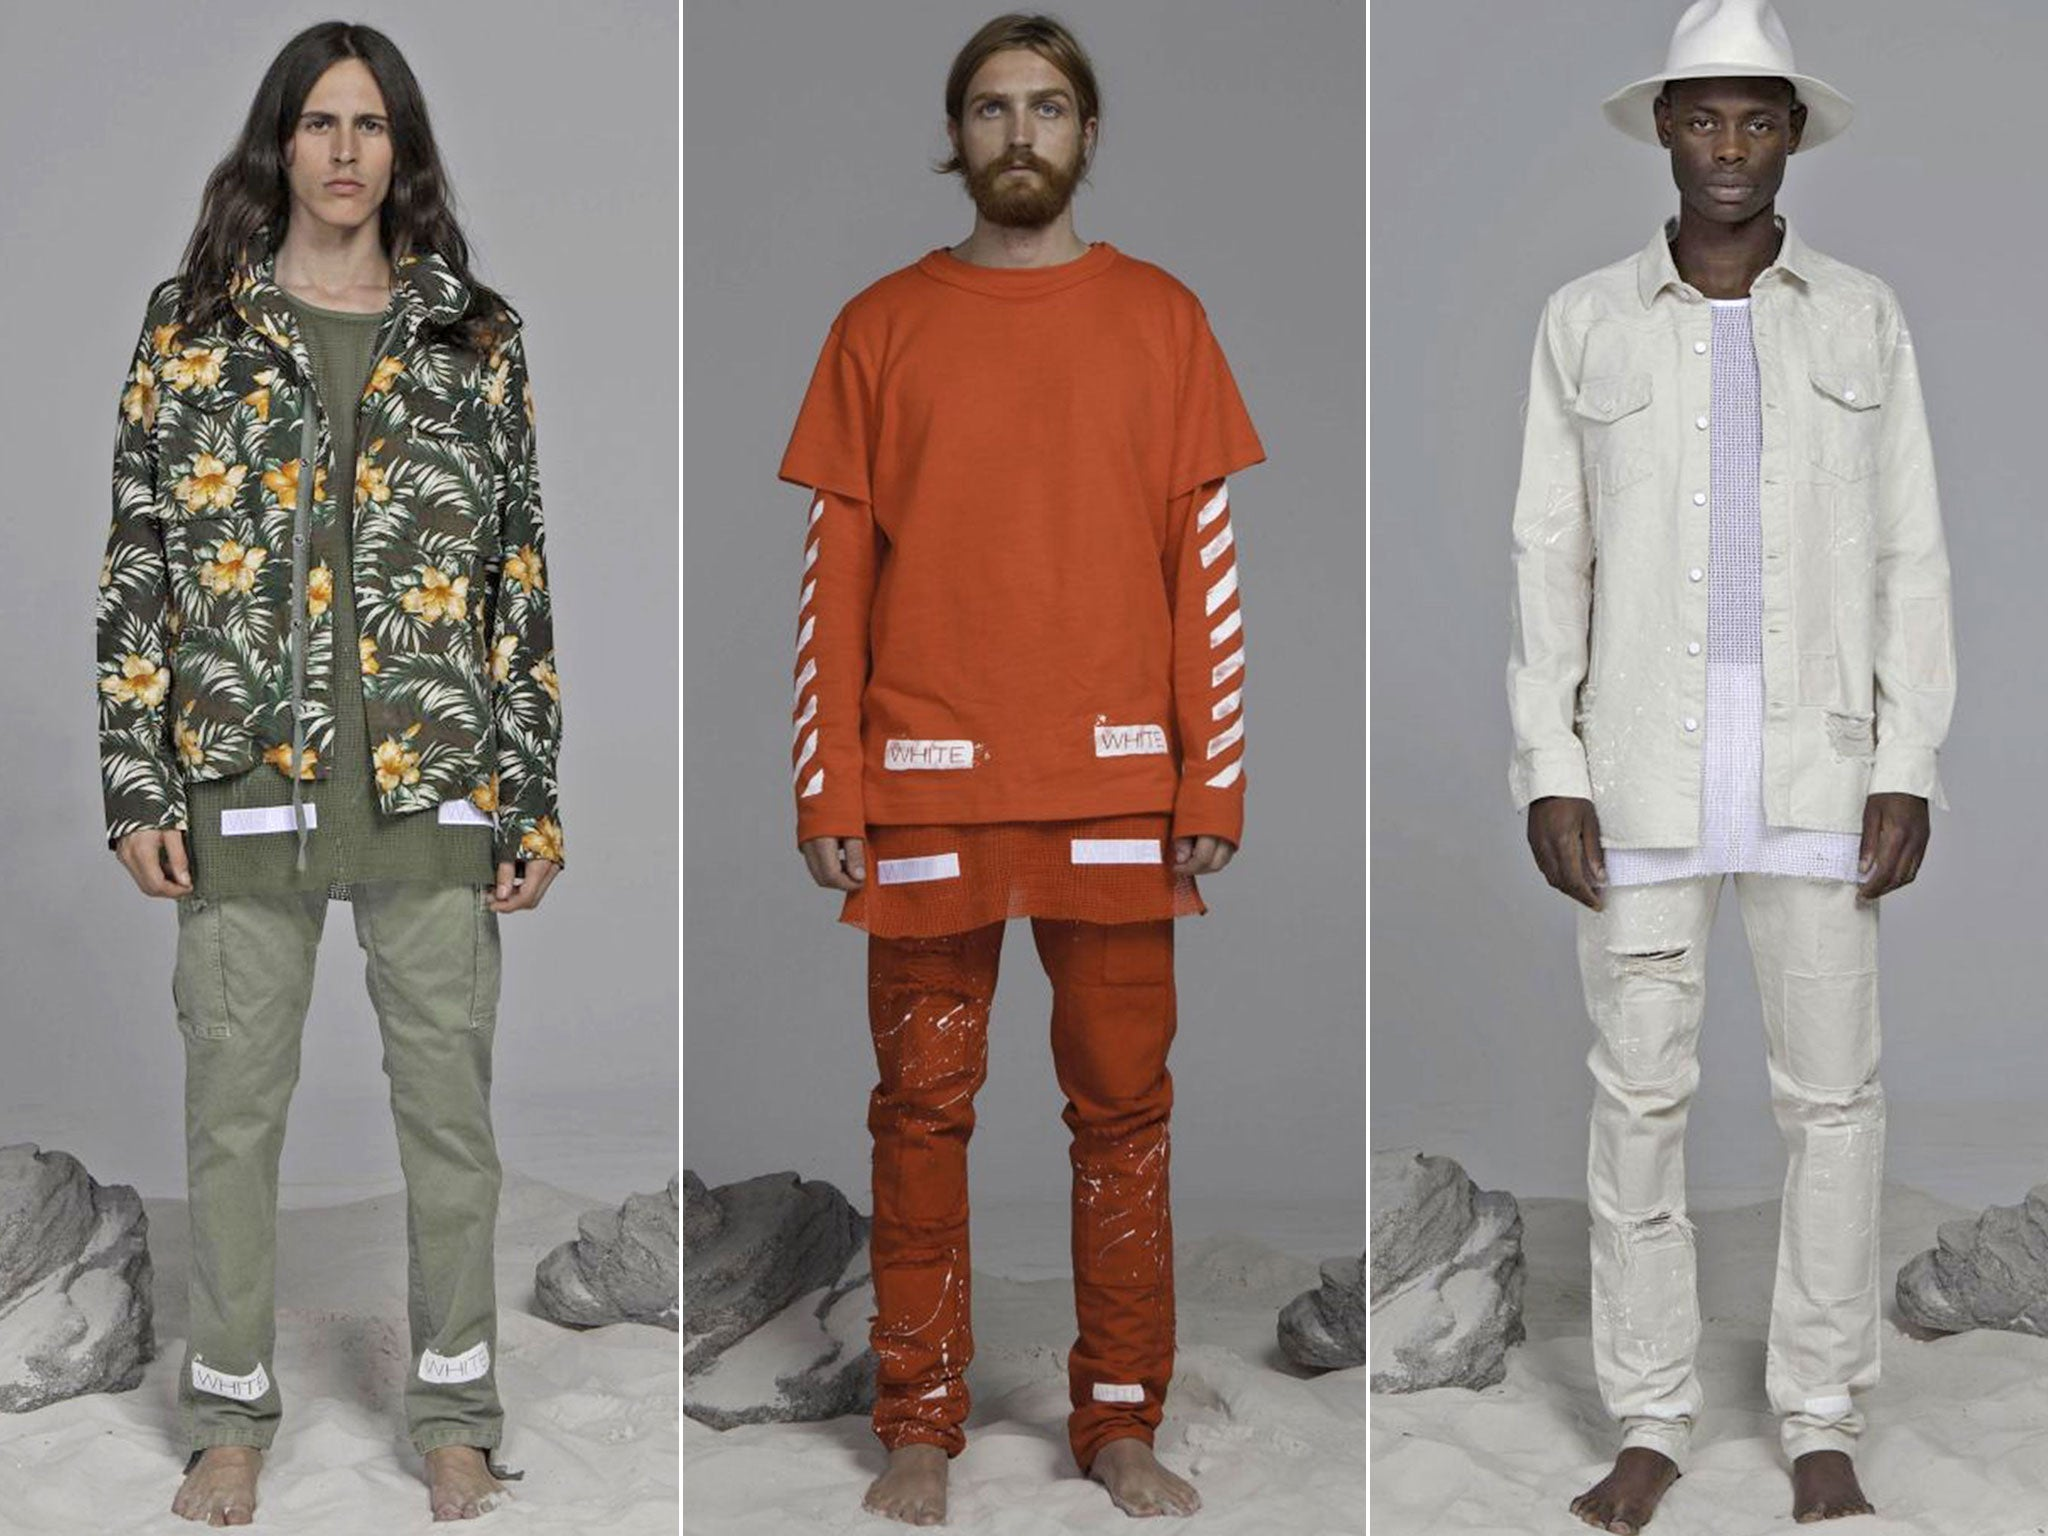 Kanye West S Creative Director Virgil Abloh Launches Streetwear Clothing Line The Independent